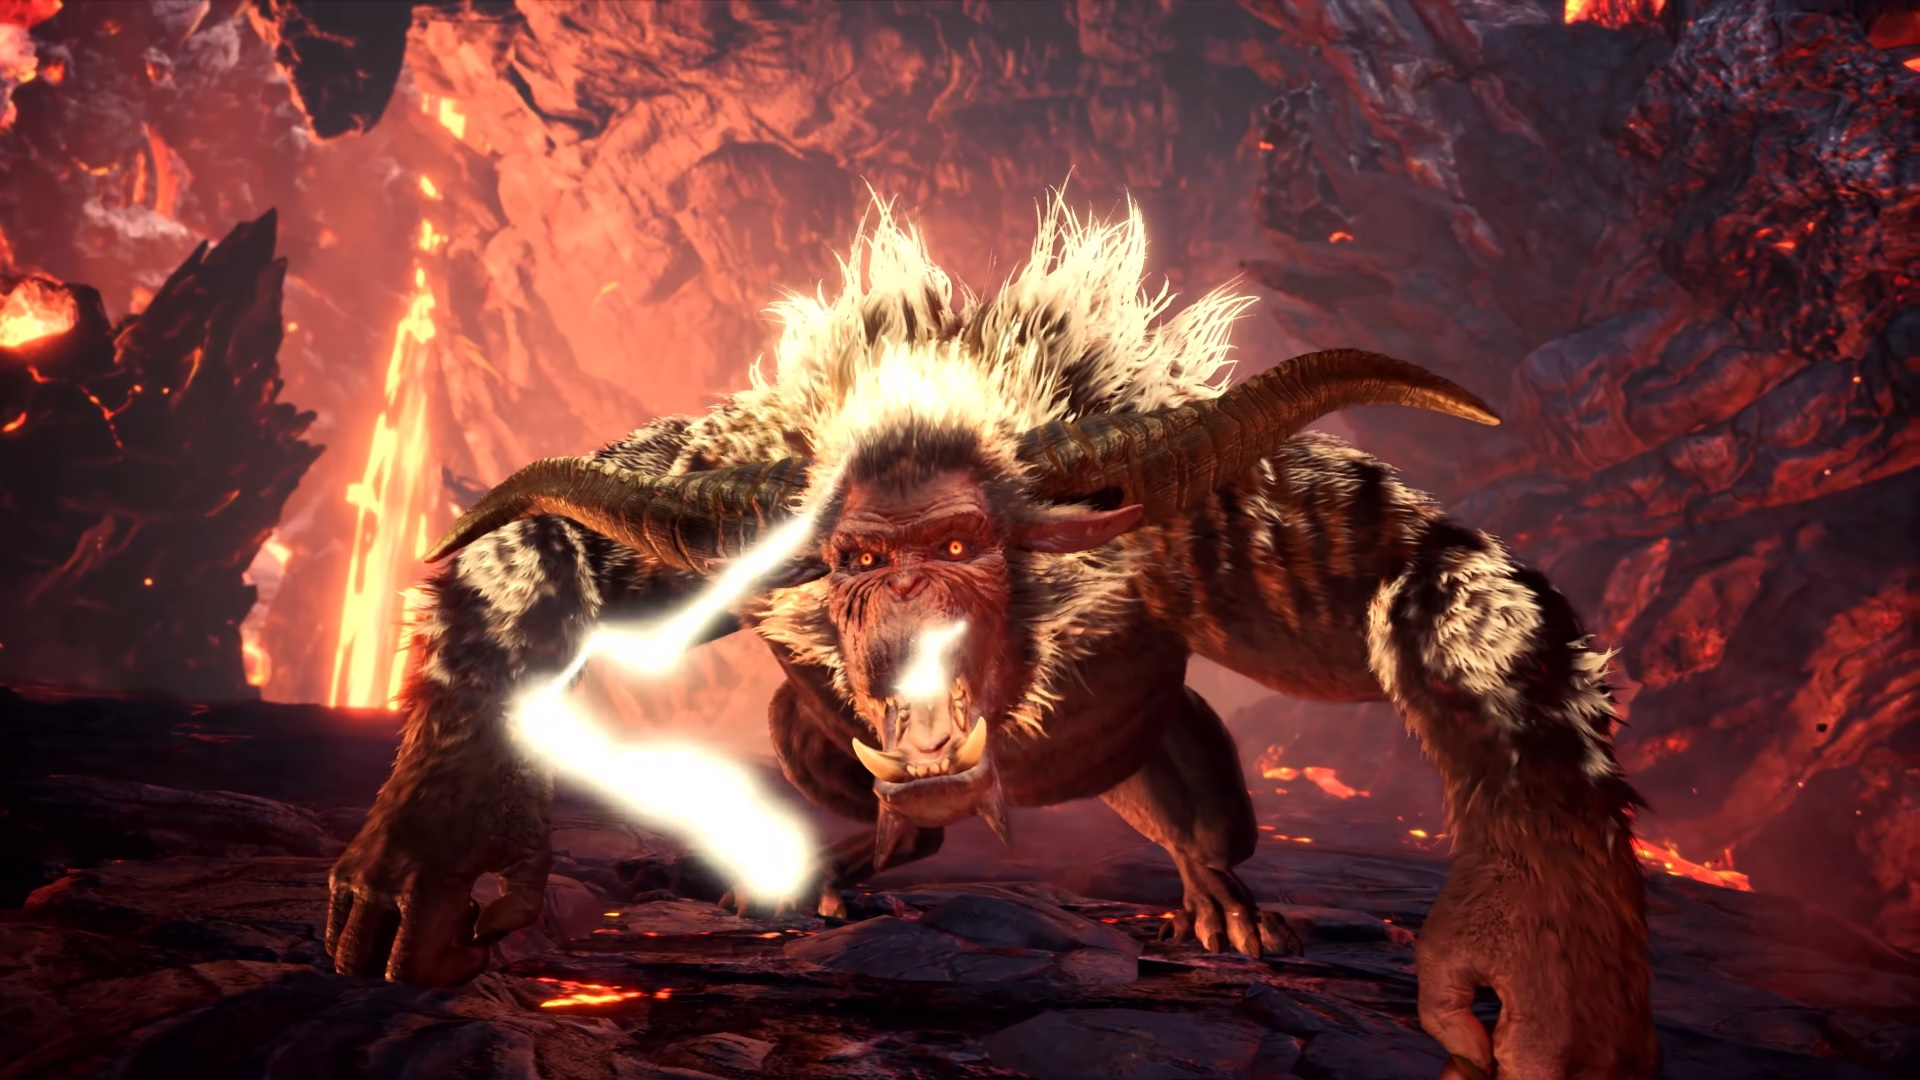 mhw muscle monkey madness